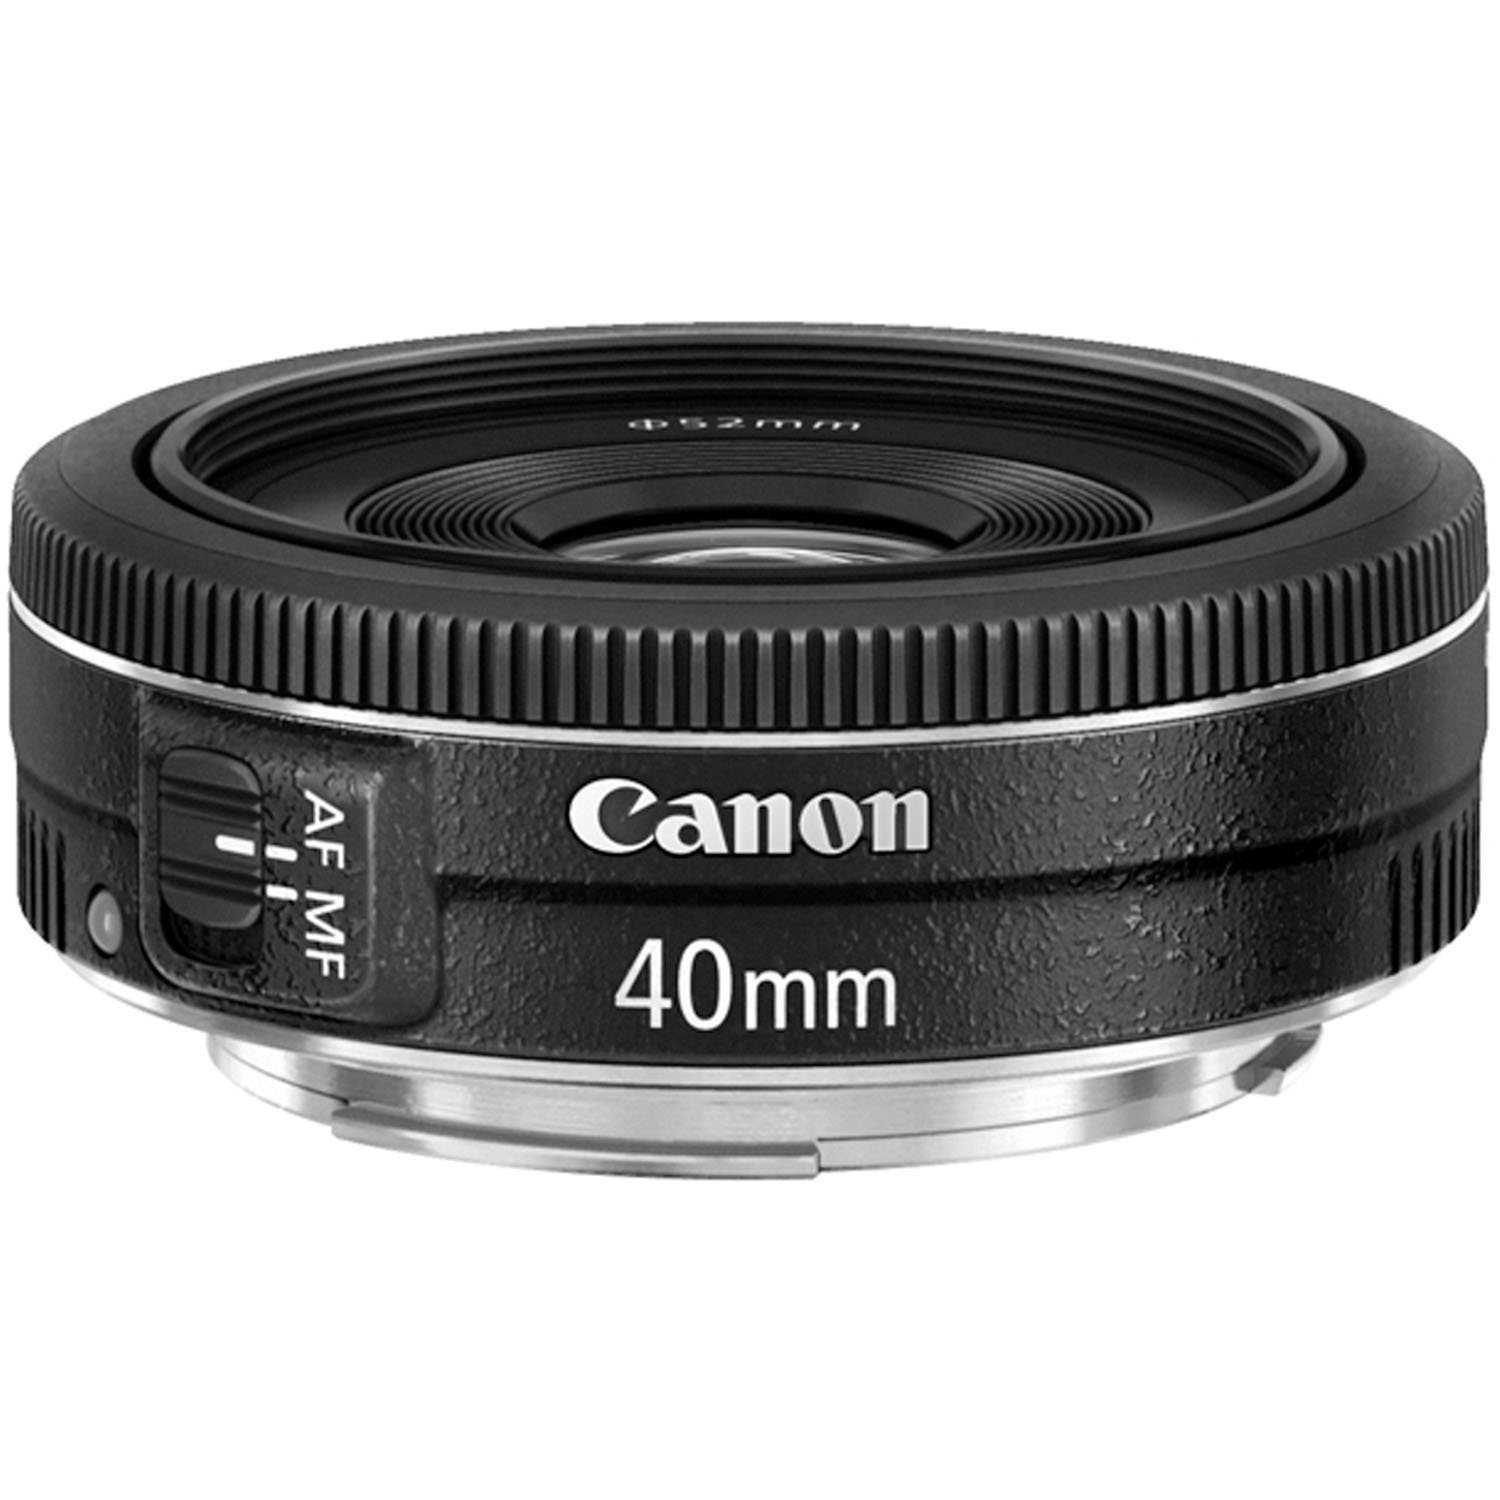 Canon mm f  STM Objetivo distancia focal fija mm apertura f